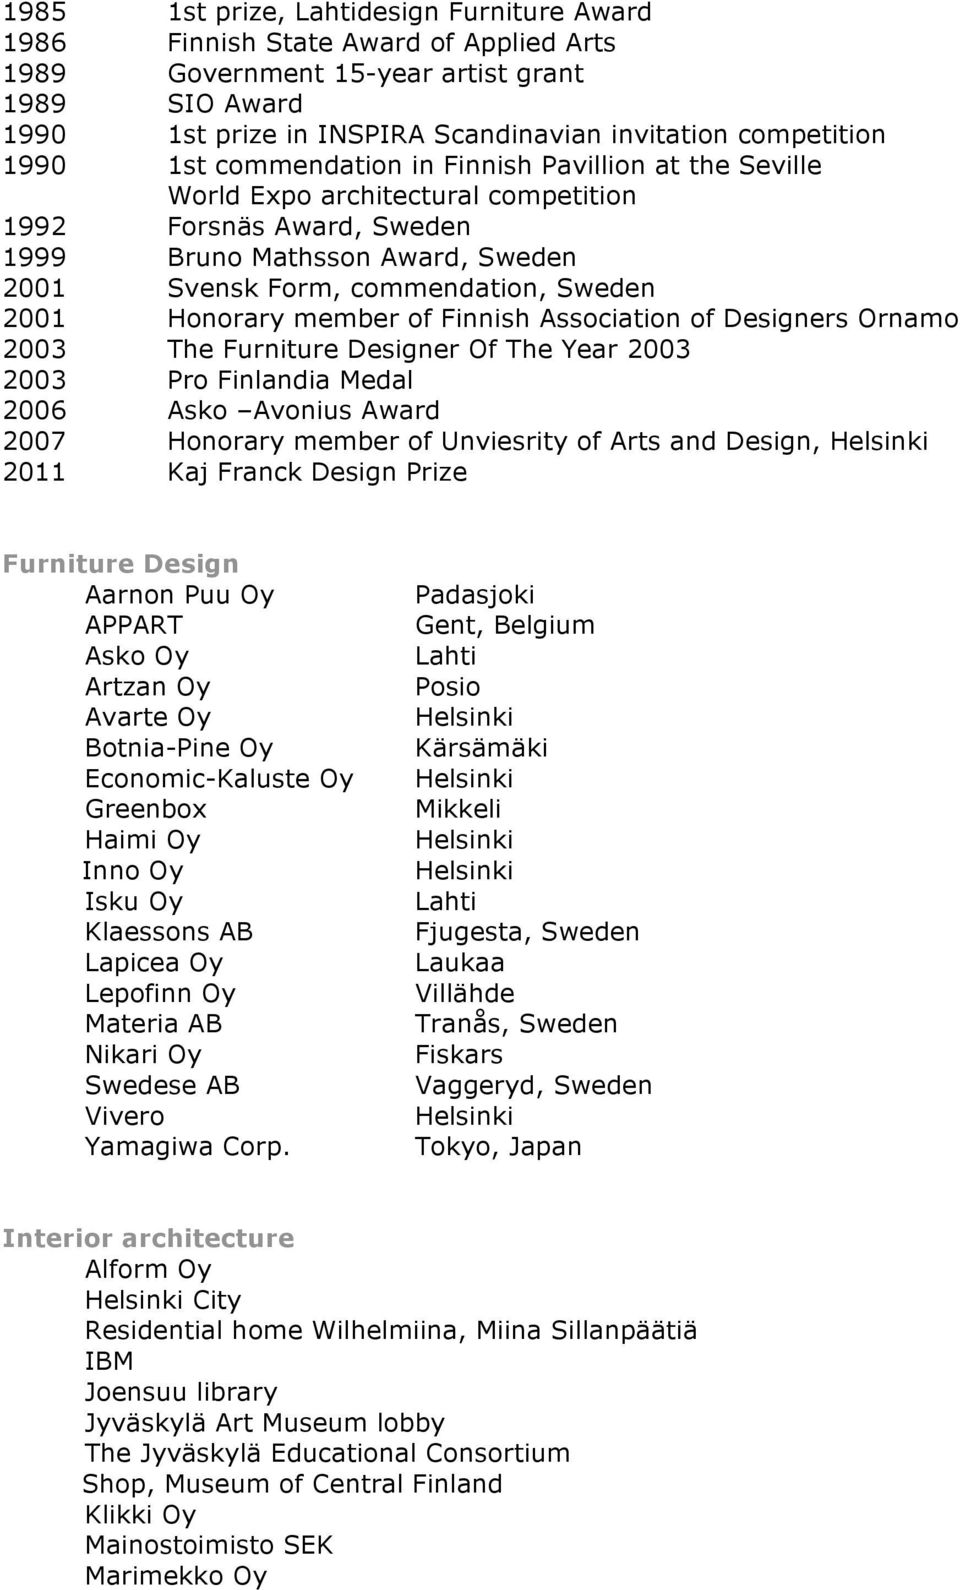 Honorary member of Finnish Association of Designers Ornamo 2003 The Furniture Designer Of The Year 2003 2003 Pro Finlandia Medal 2006 Asko Avonius Award 2007 Honorary member of Unviesrity of Arts and